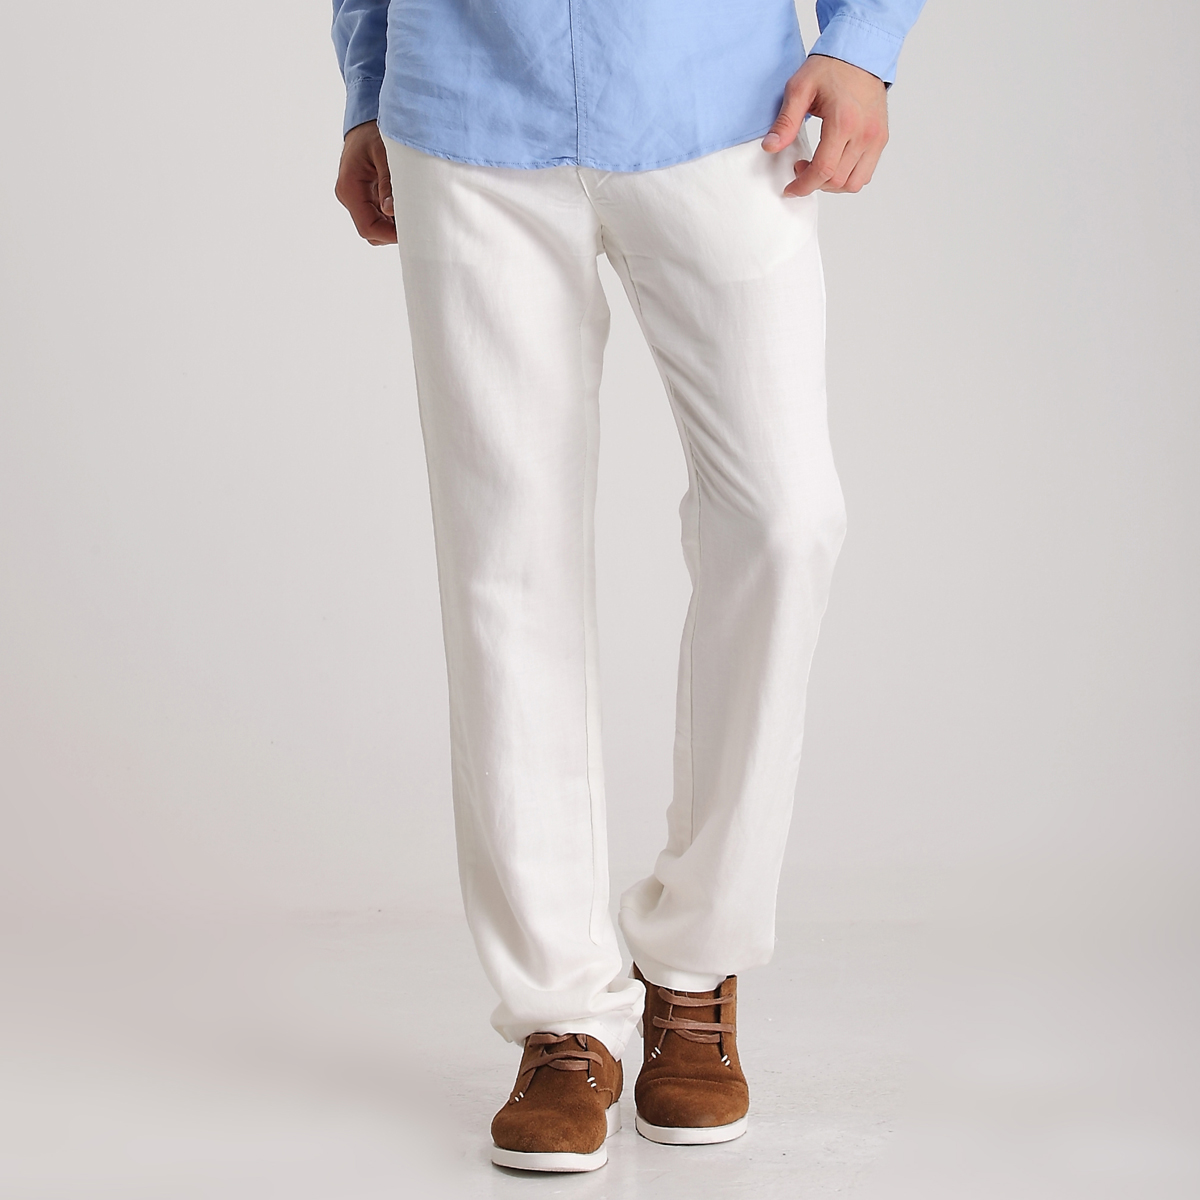 Mens Pants For Summer